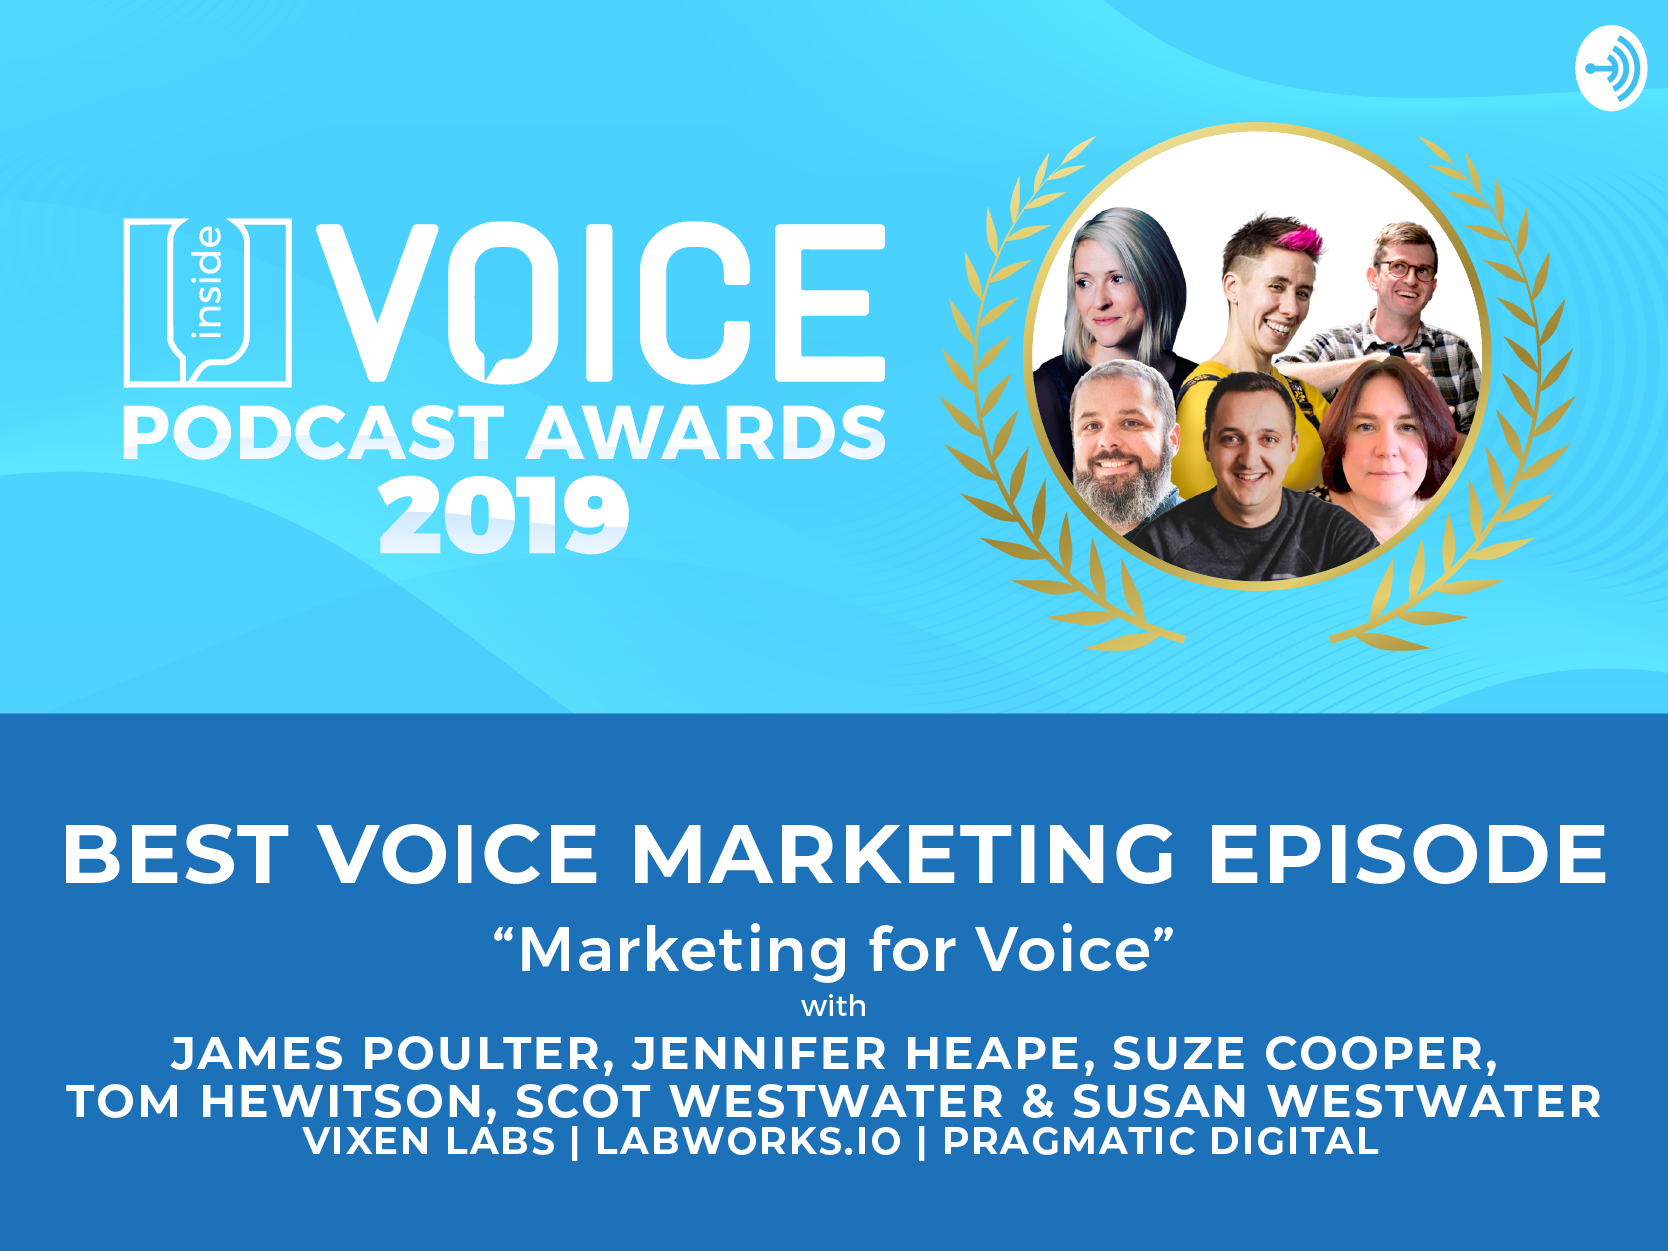 best_voice_marketing_episode_podcast